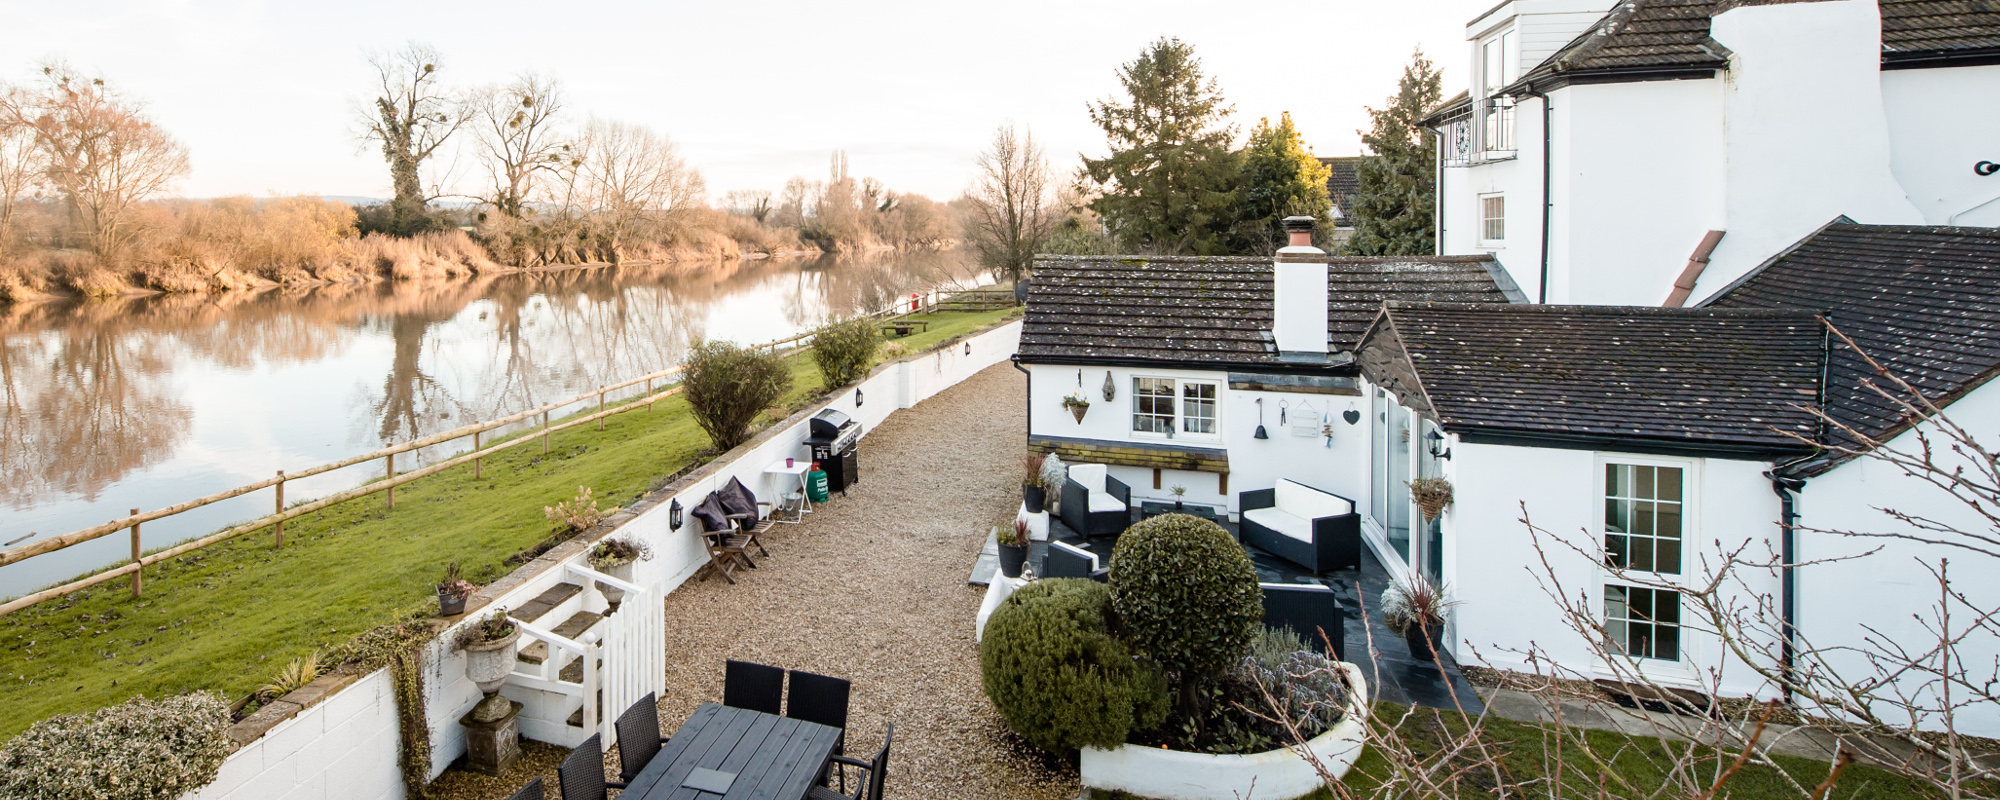 View of the River Severn from the annexe at Riverside Party House